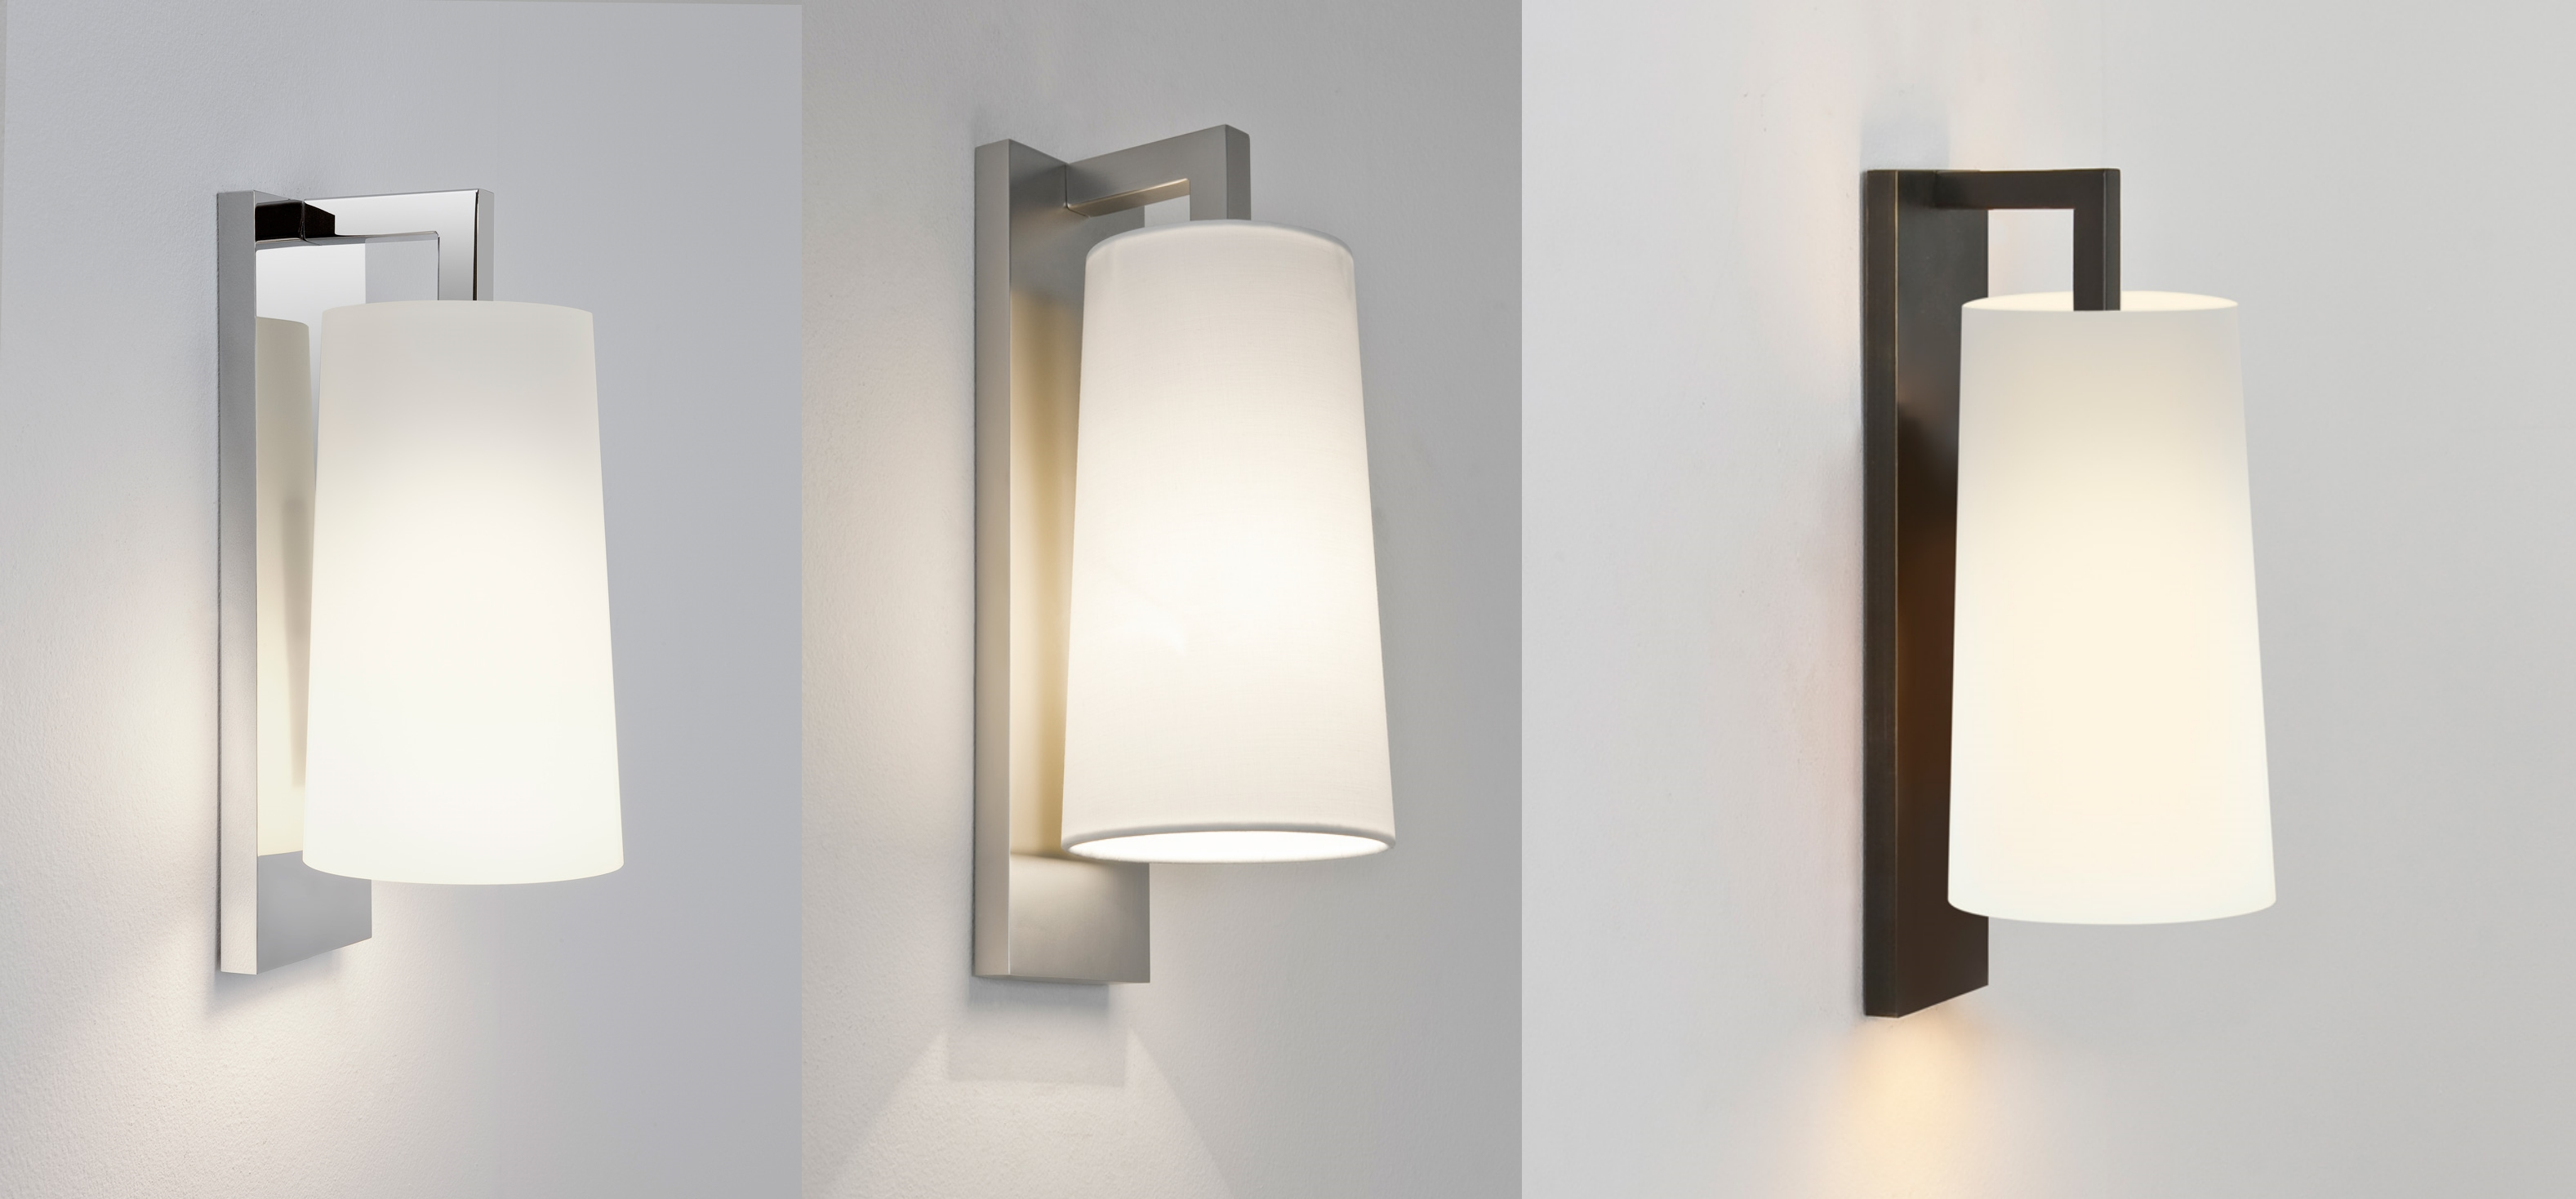 Astro Lago 280 Bathroom Wall Light 60w E27 Chrome Bronze Nickel Glass Fabric Ebay